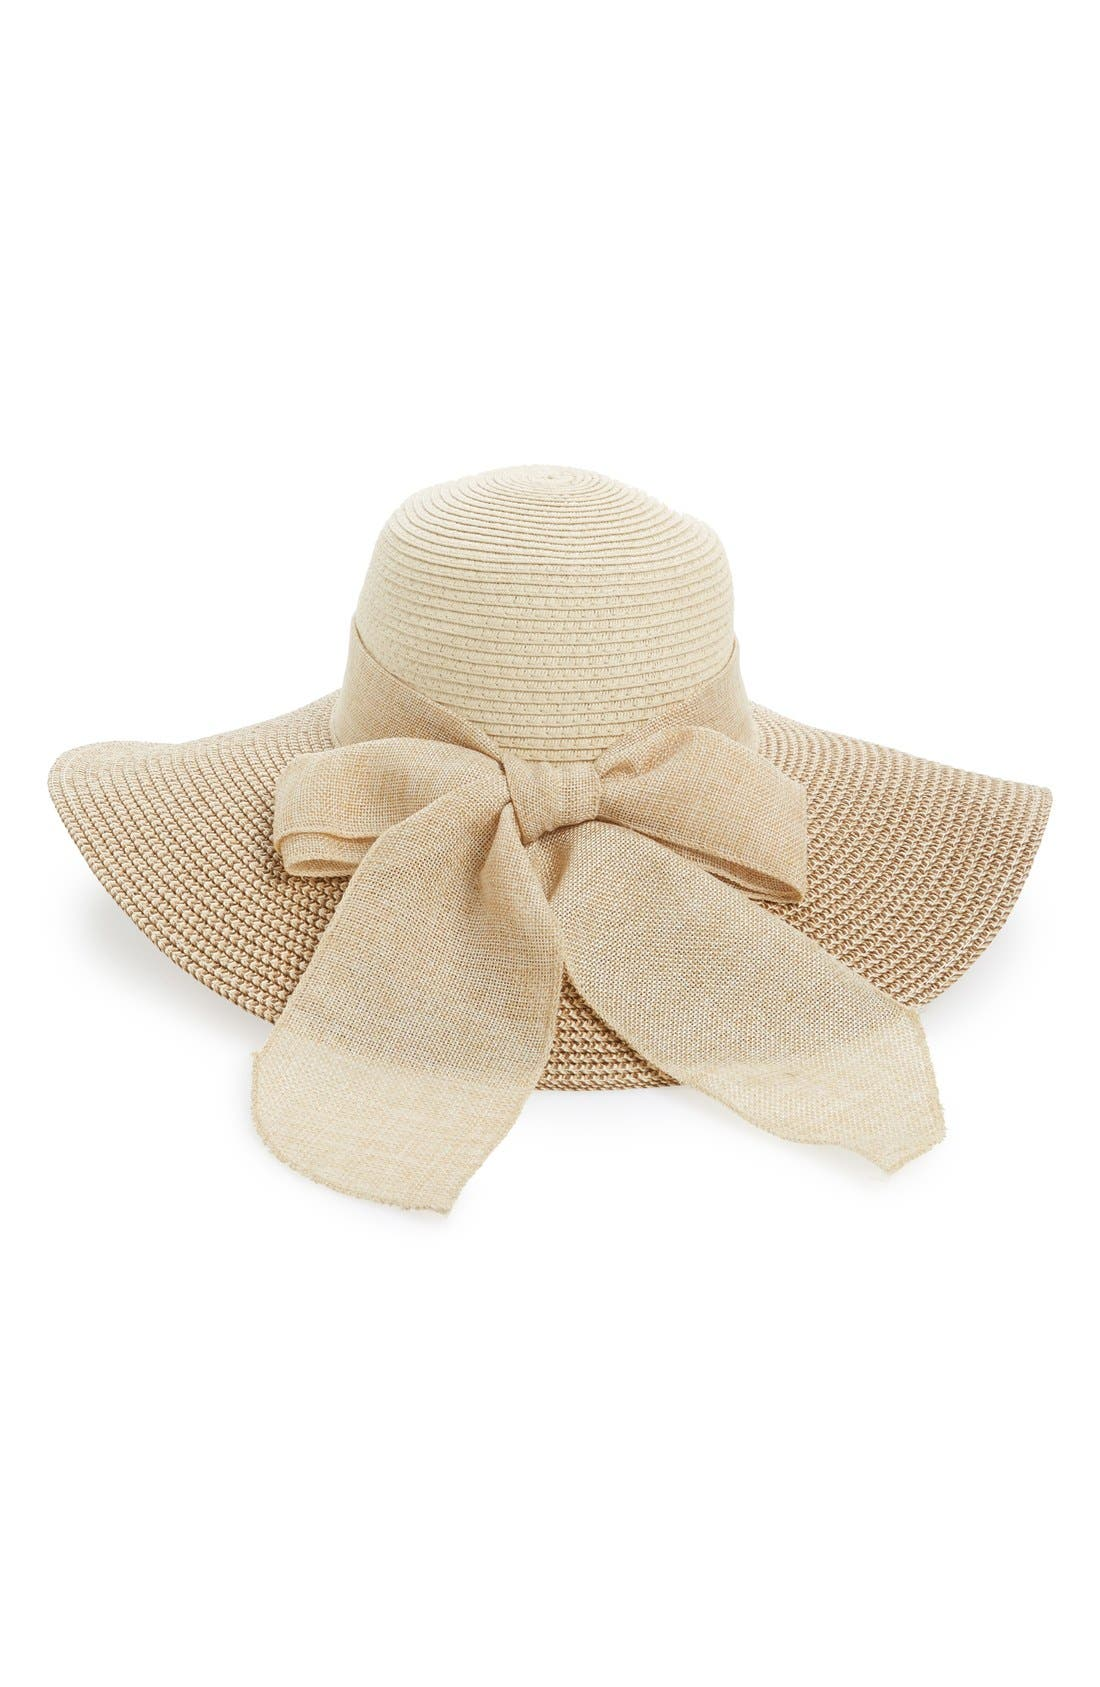 Floppy Straw Hat,                         Main,                         color, 260